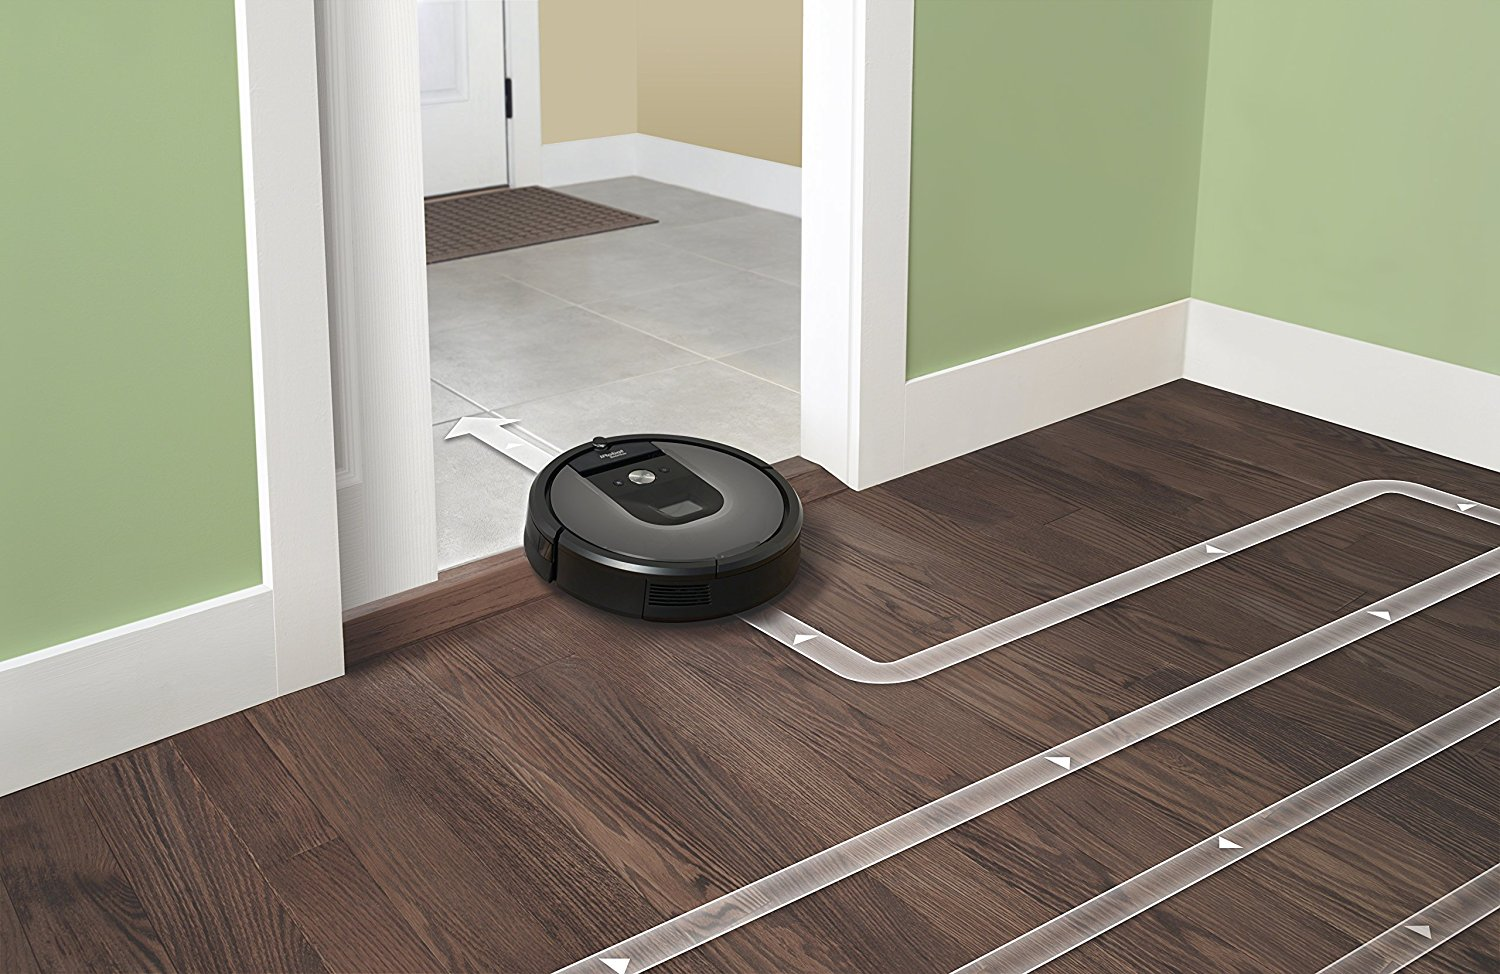 Robot vacuums for hardwood comparison ratings reviews for 2018 top robot vacuums for hardwood in 2018 dailygadgetfo Choice Image